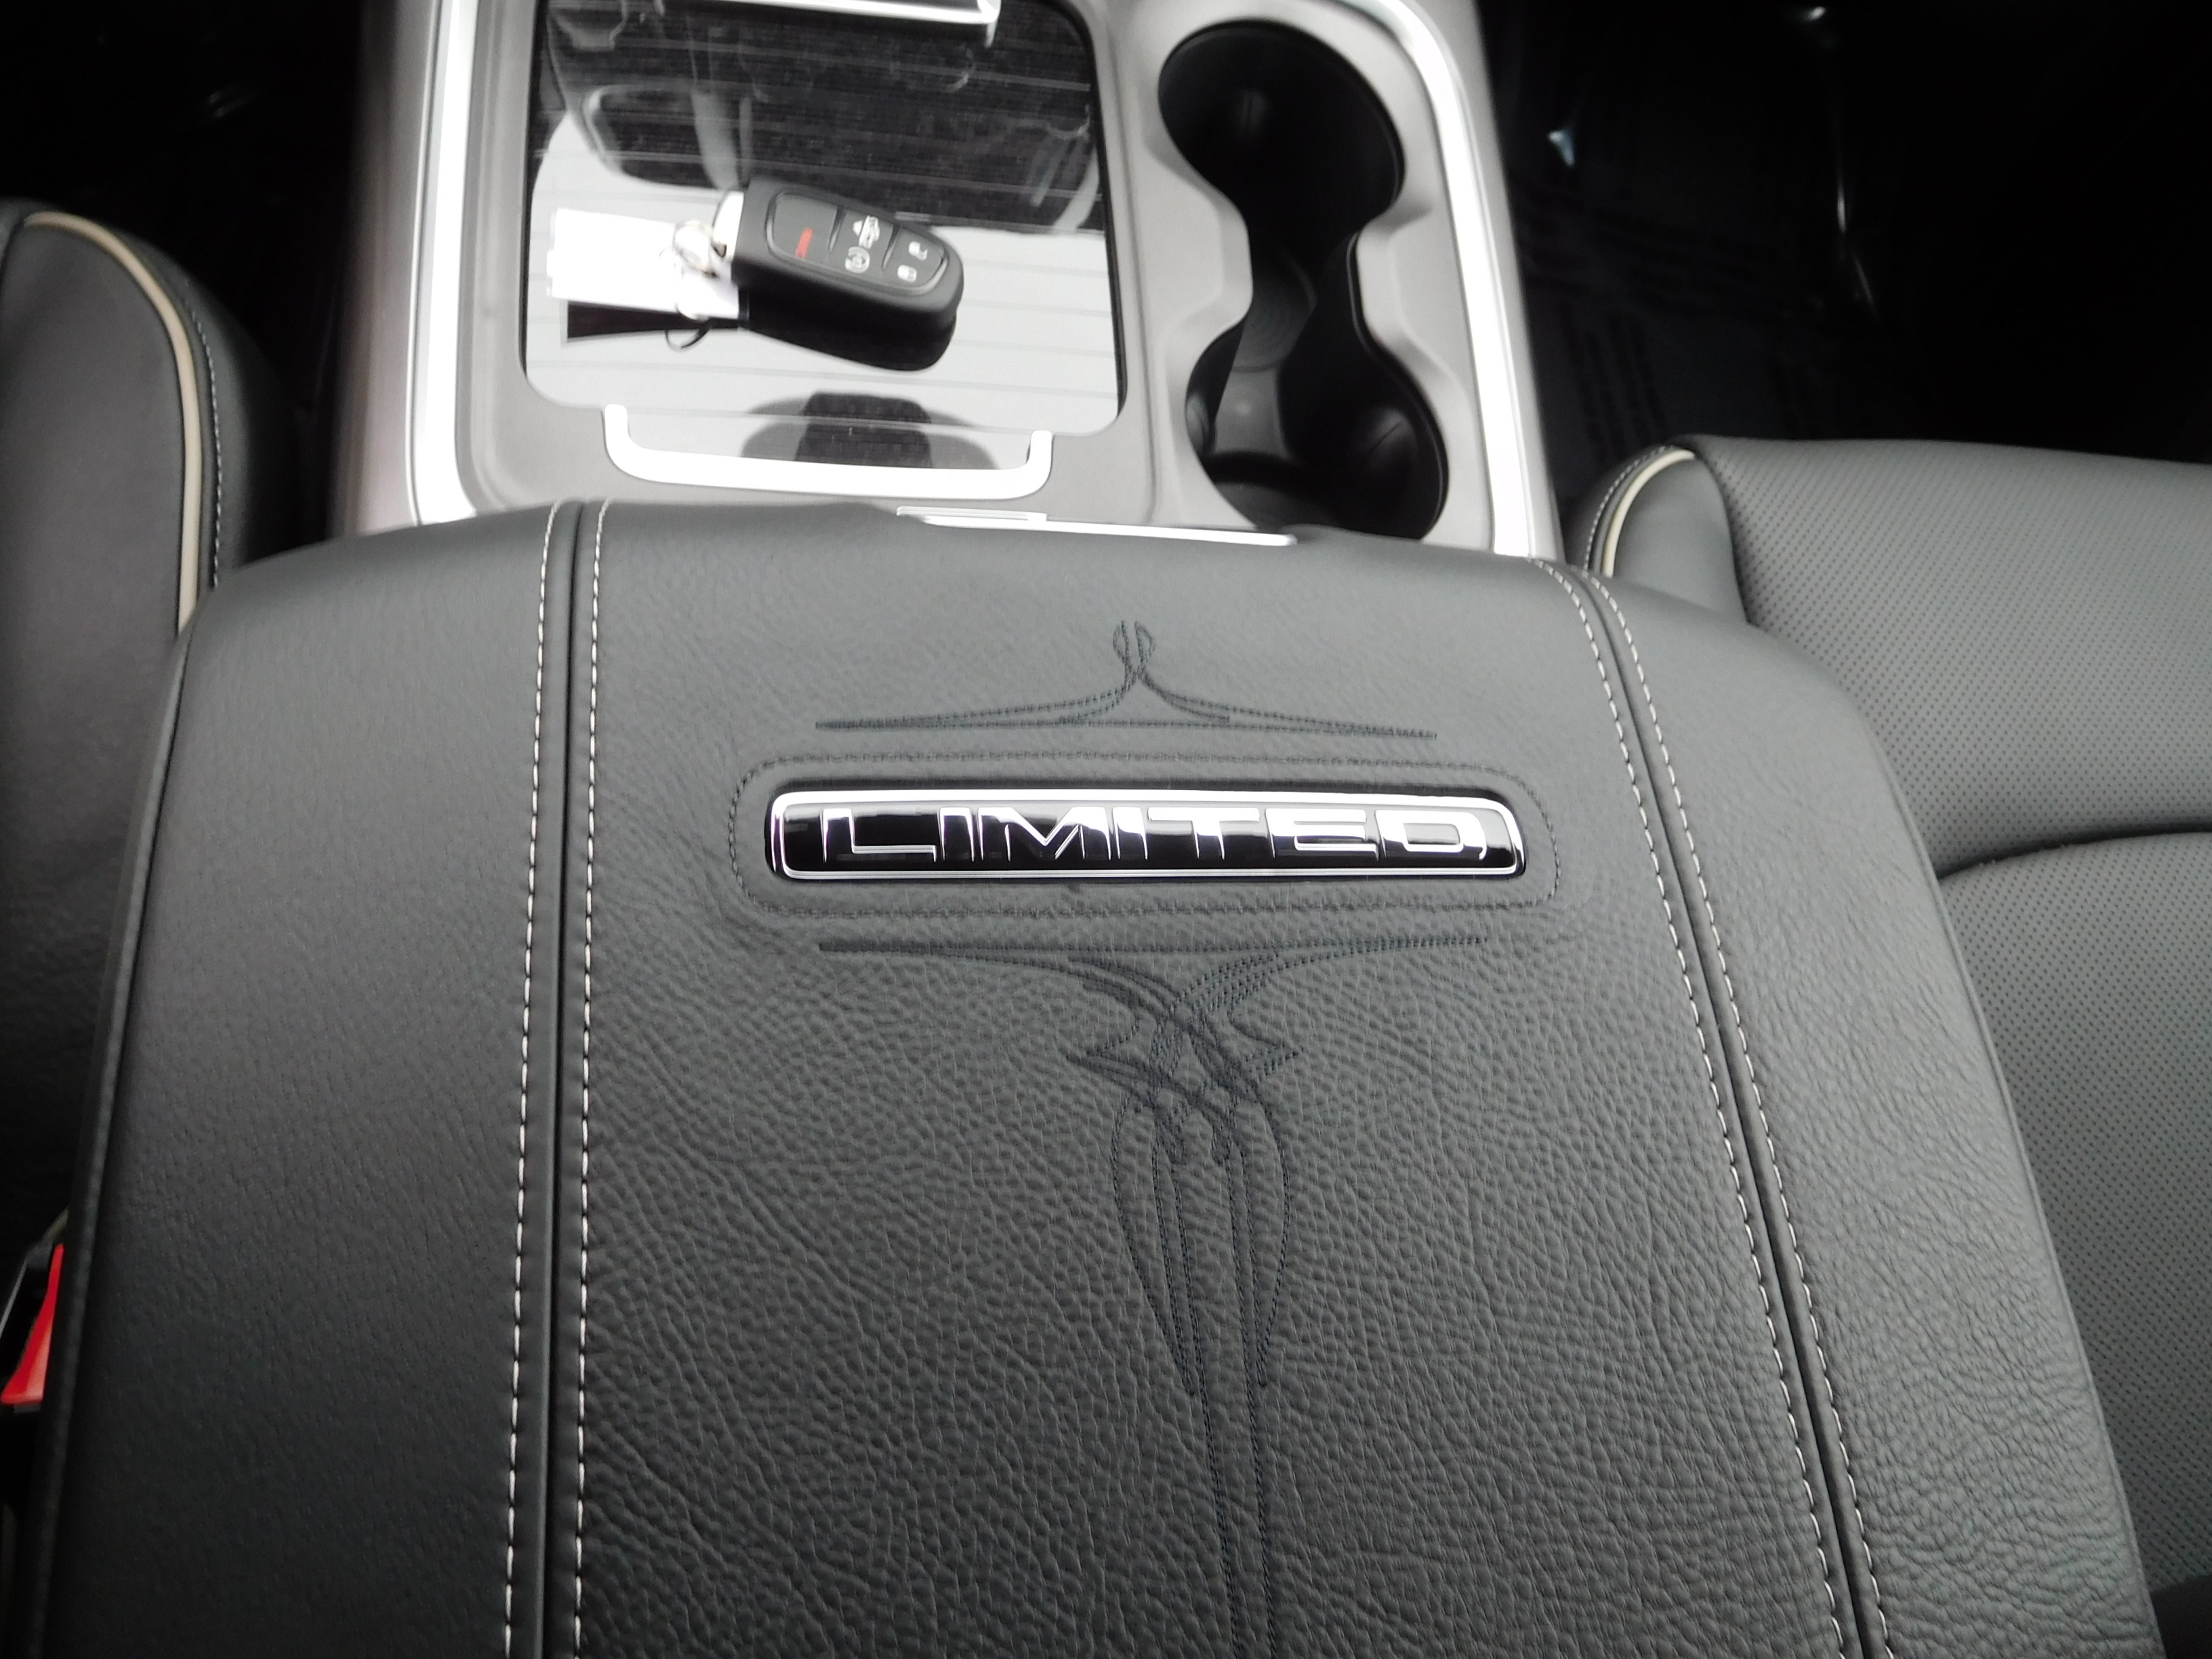 2017 Ram 1500 Crew Cab 4x4, Pickup #14614 - photo 16